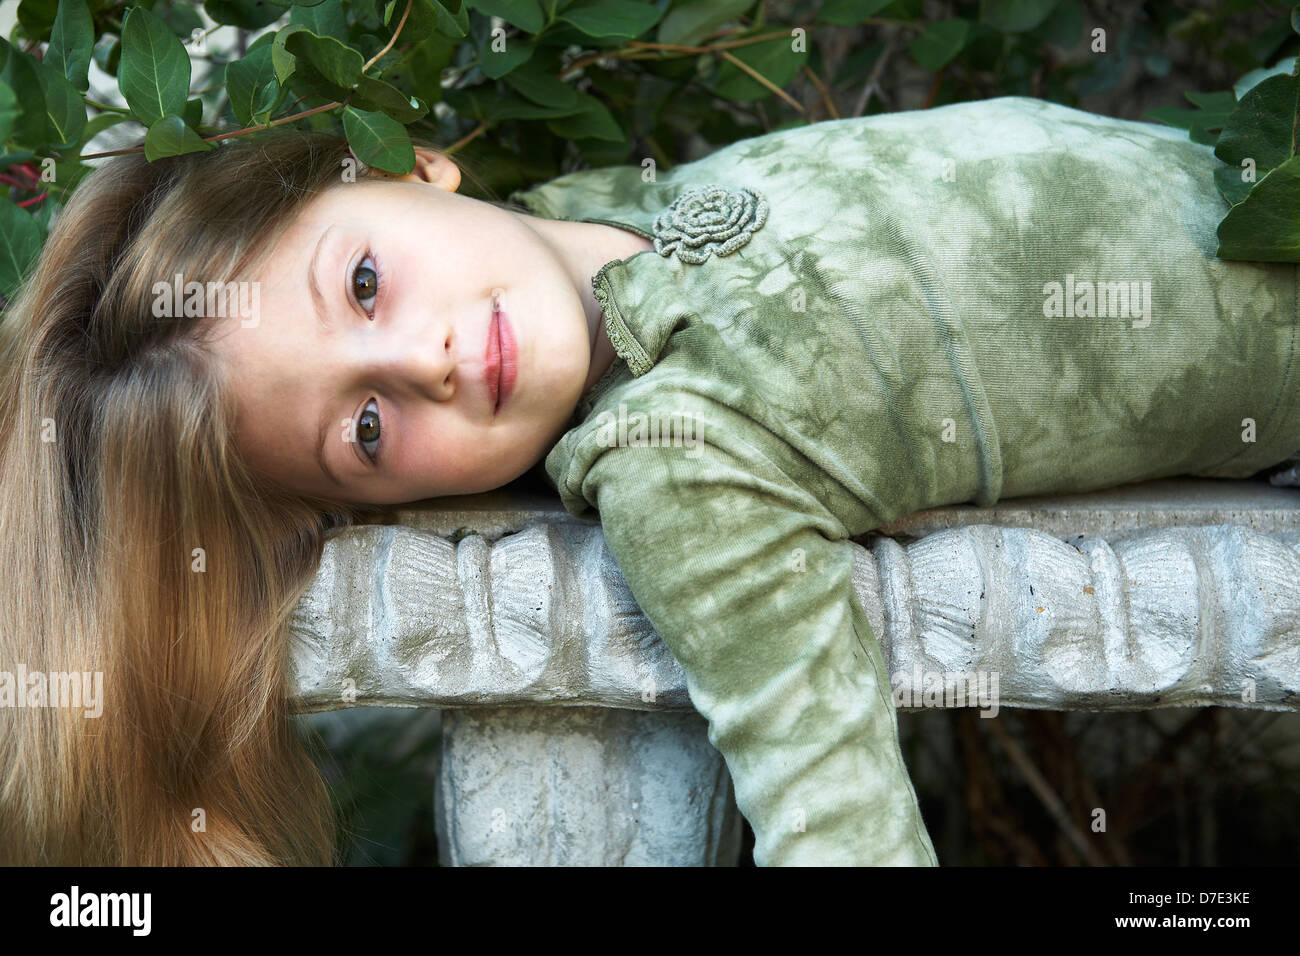 7 year old girl lying on garden bench - Stock Image